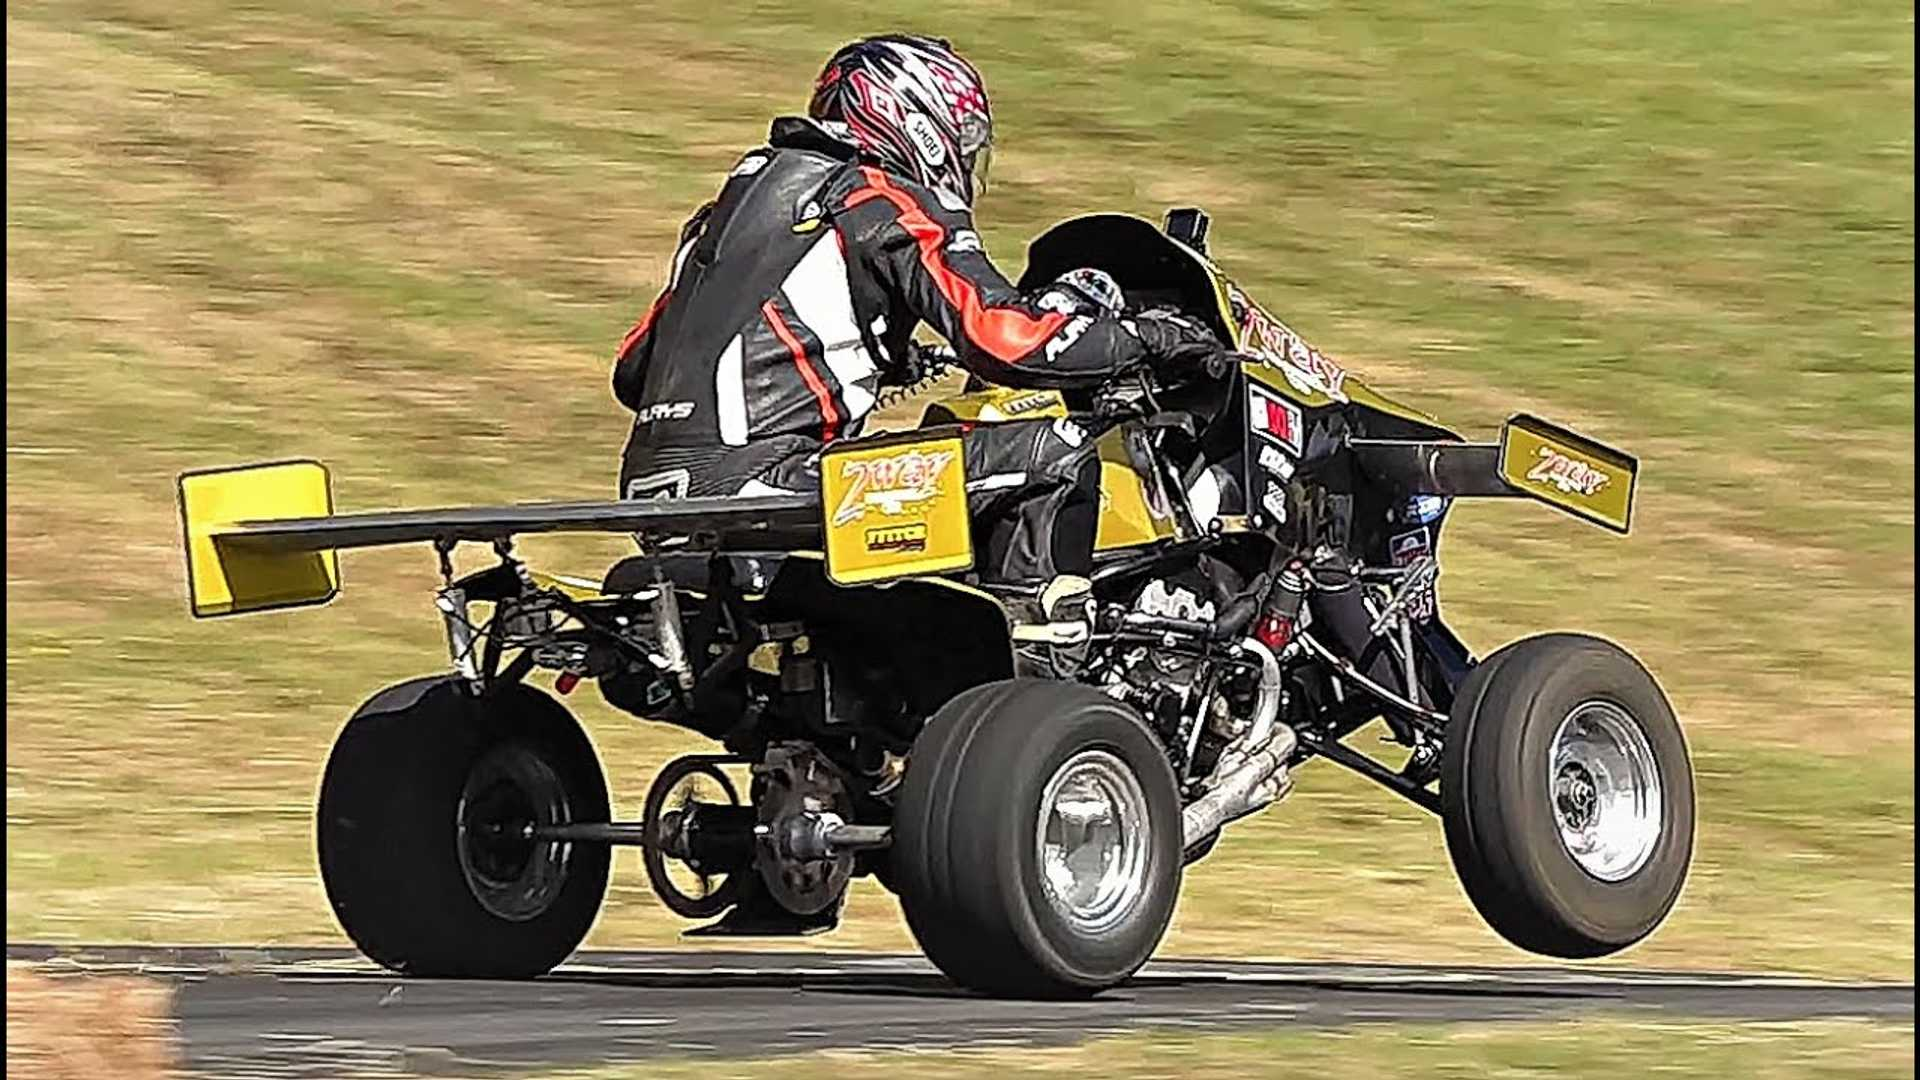 This GSX-R1000-Powered Quadzilla Is King Of The Monsters